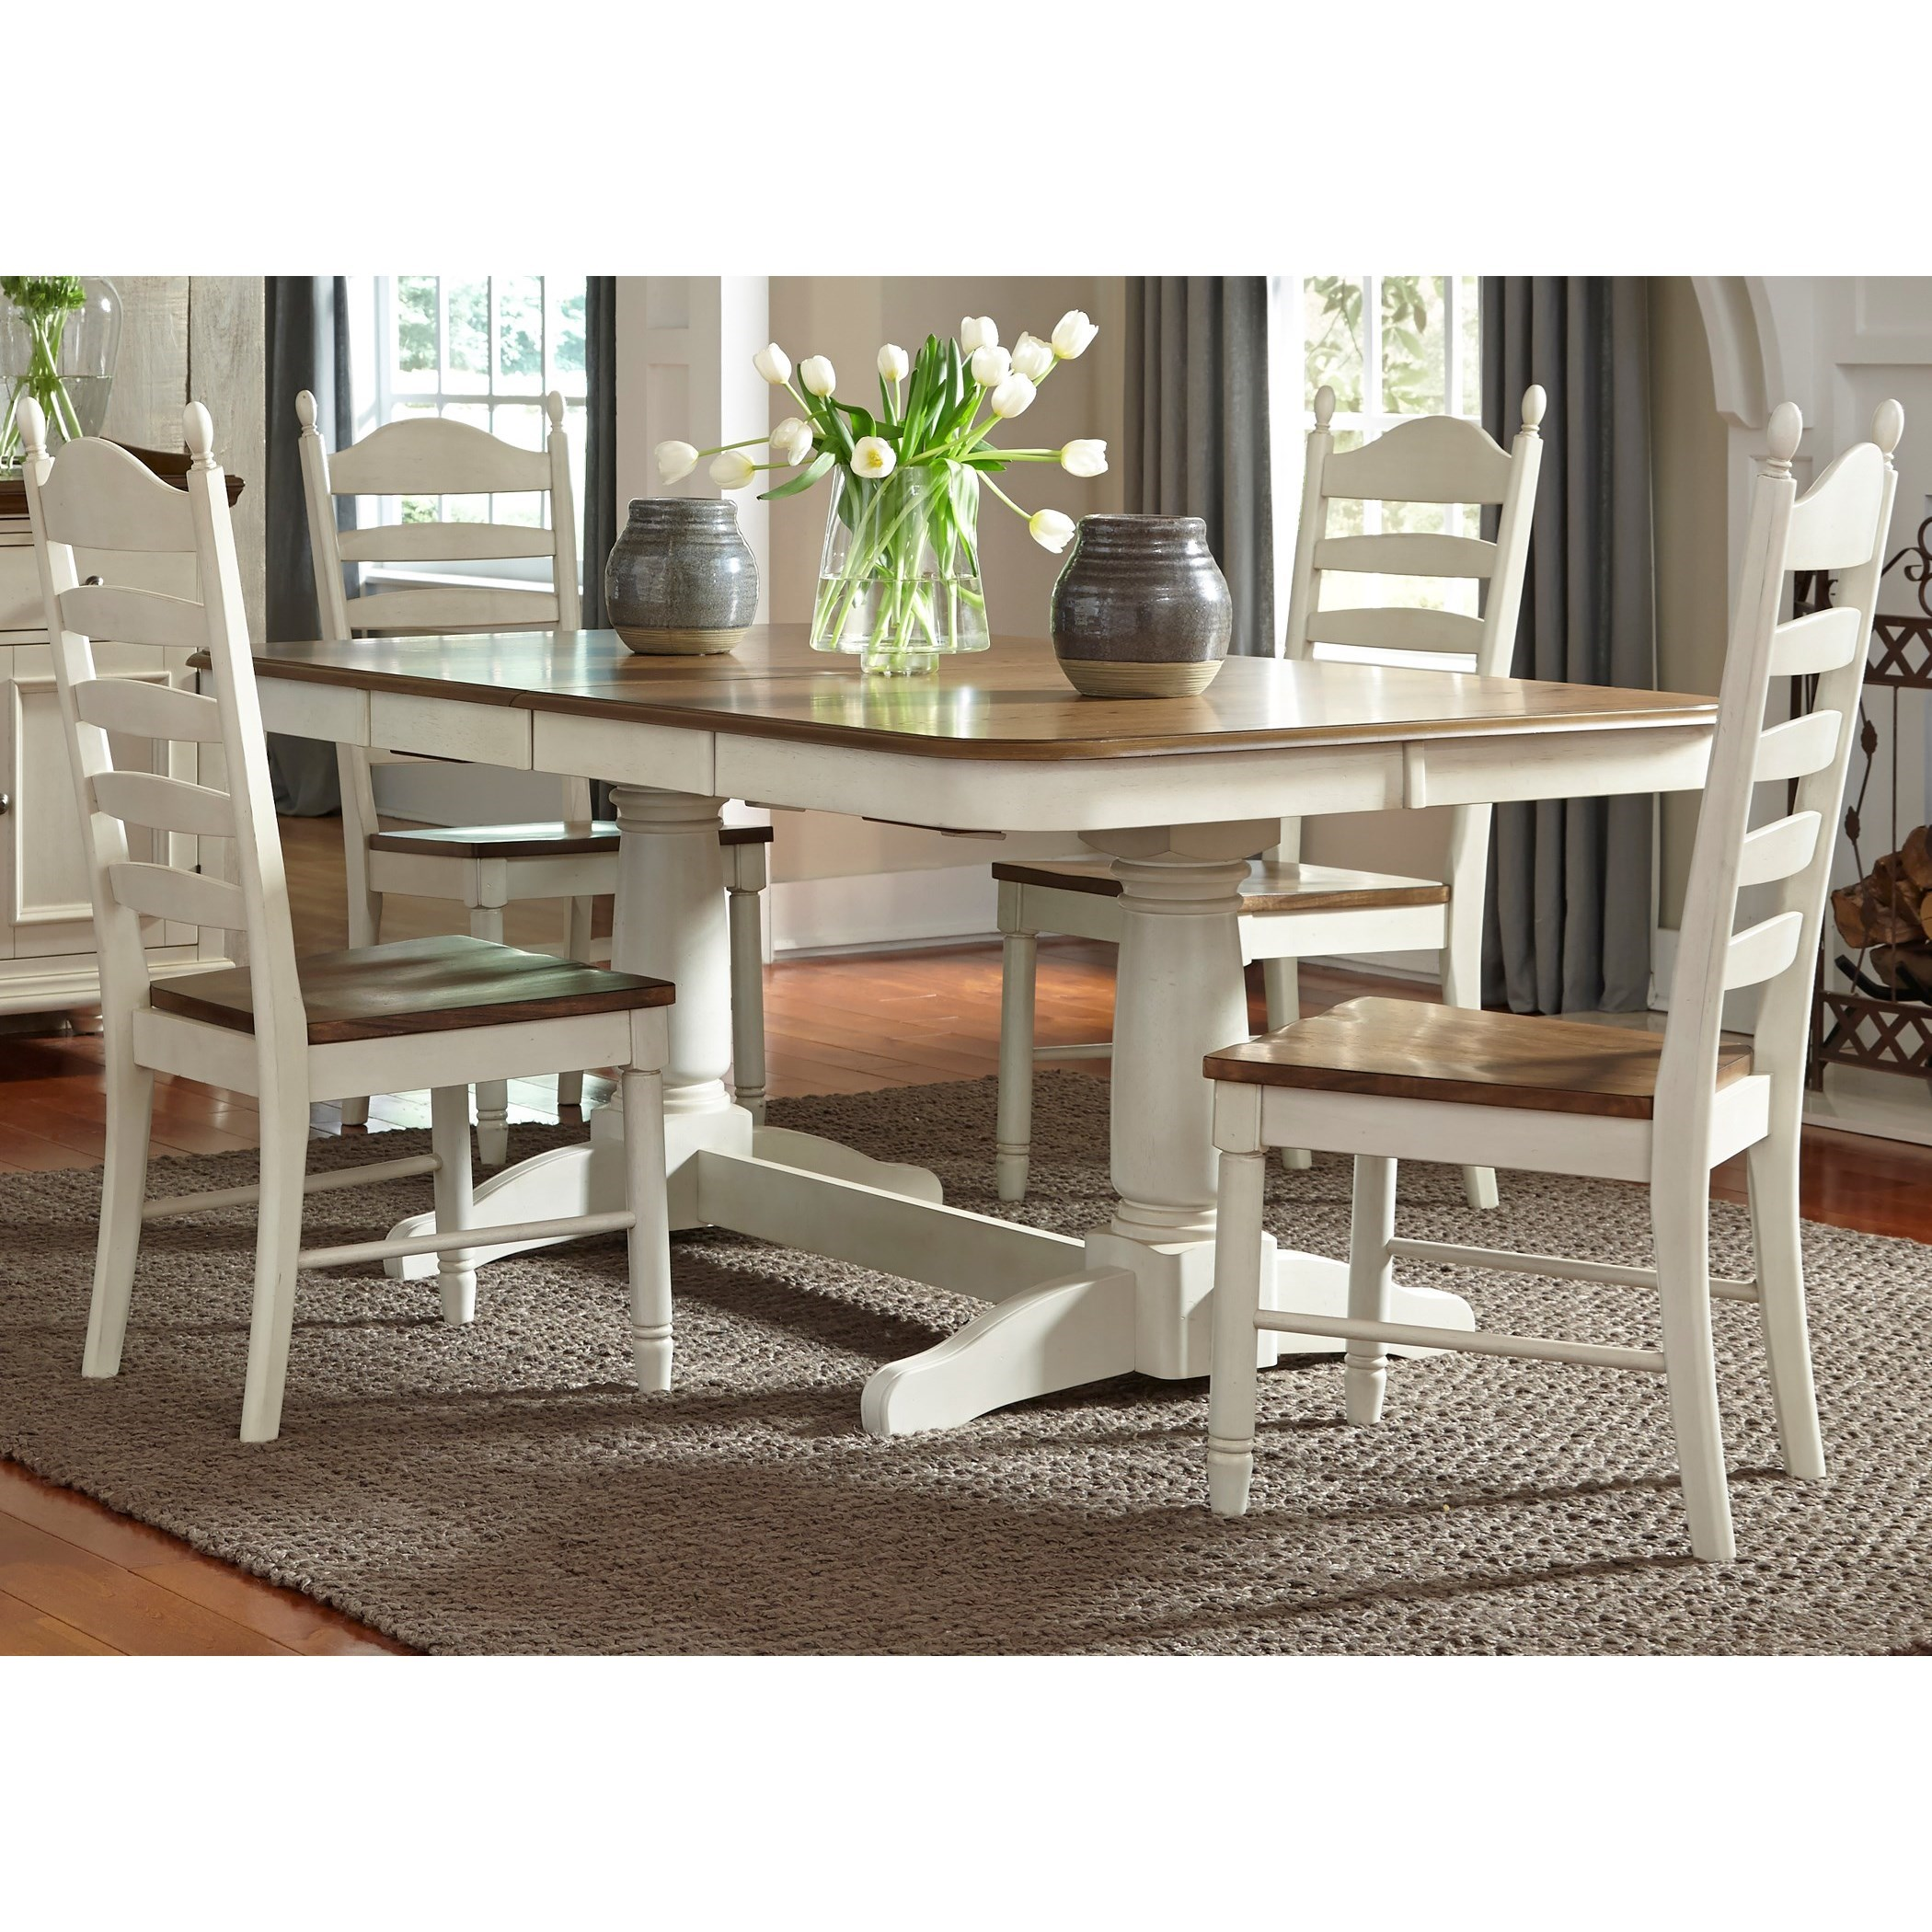 Springfield Dining Double Pedestal Table by Sarah Randolph Designs at Virginia Furniture Market